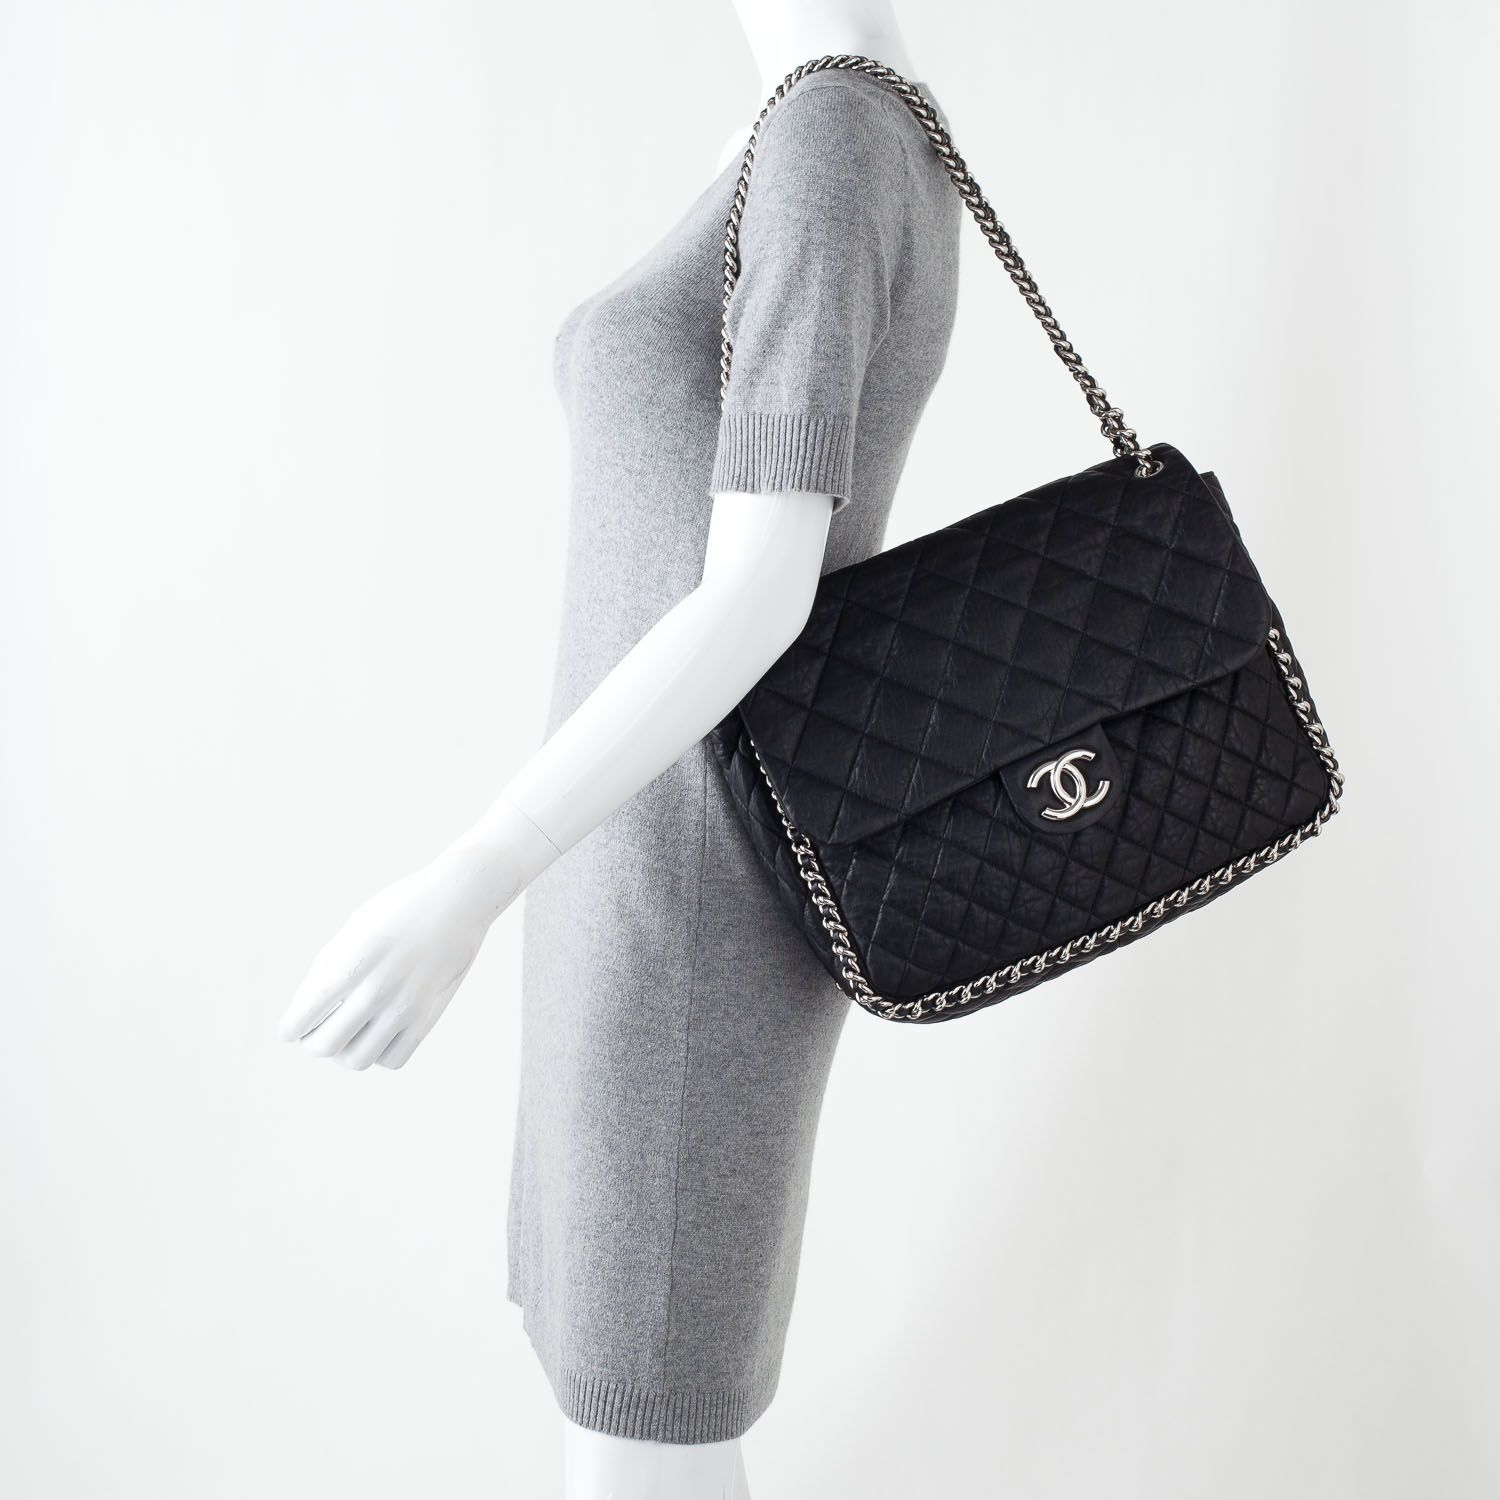 c2a0aeb465e0c8 CHANEL Washed Lambskin Chain Around Maxi Flap Bag Black | Wish List ...